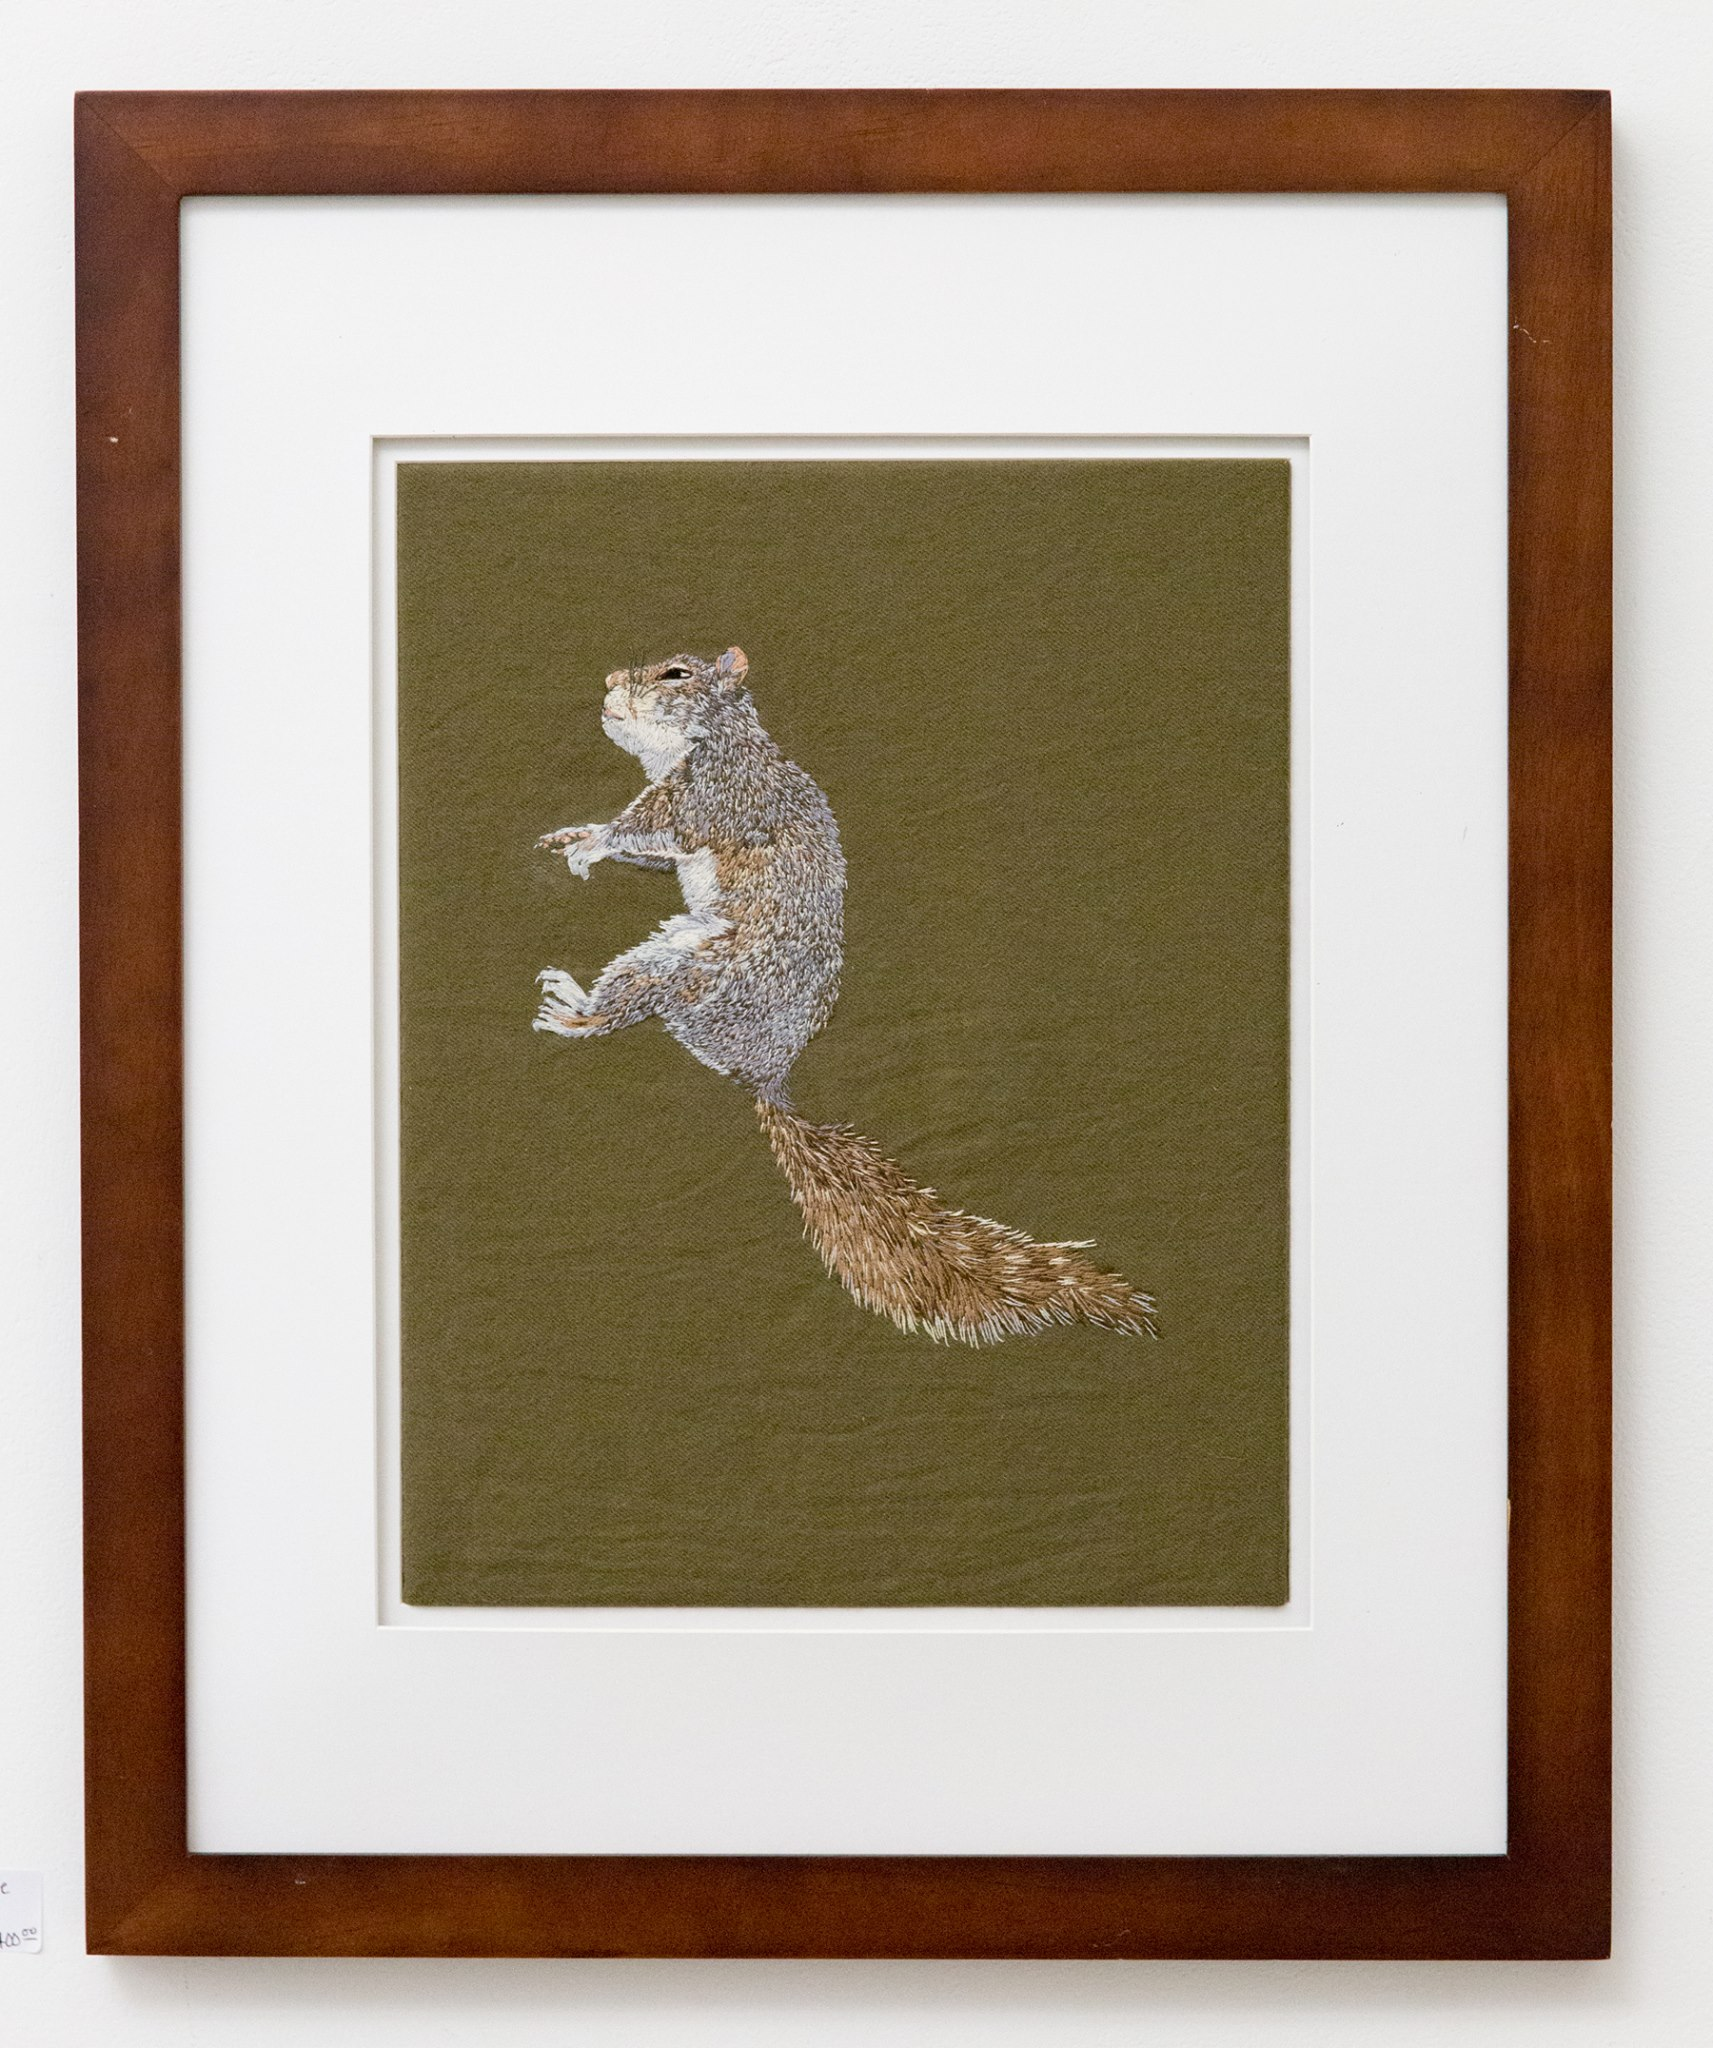 """Third place - Meaghan Green with """"Grey Squirrel"""" Insta: @mei_greene  For Sale: $900"""